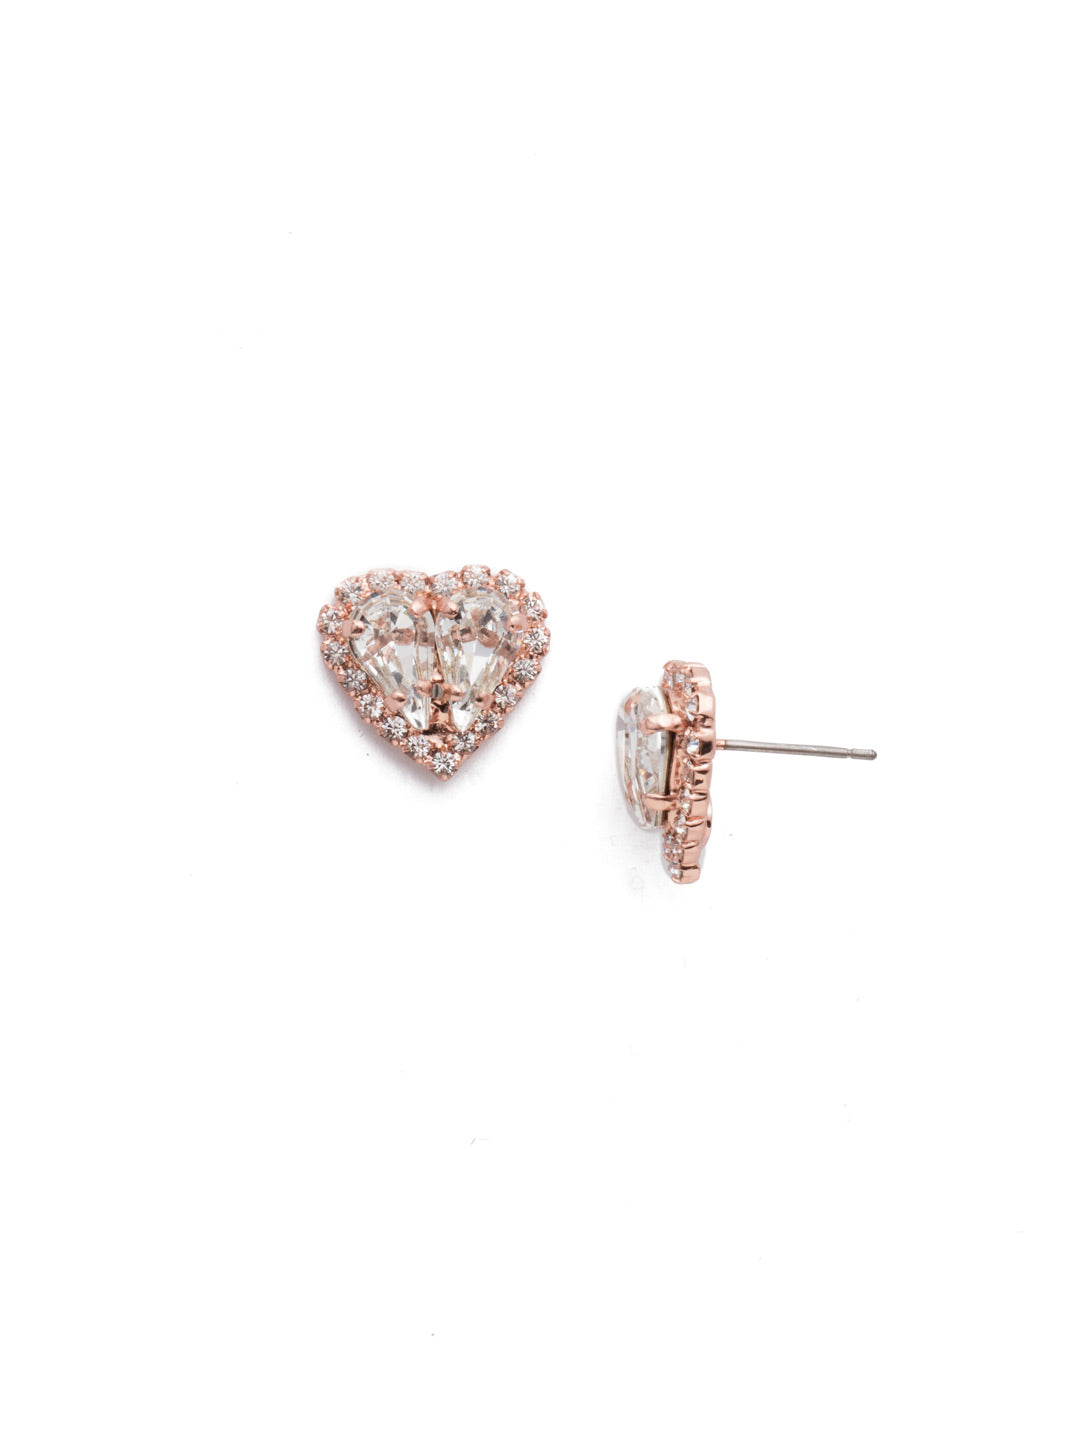 Vida Stud Earrings - EER12RGCRY